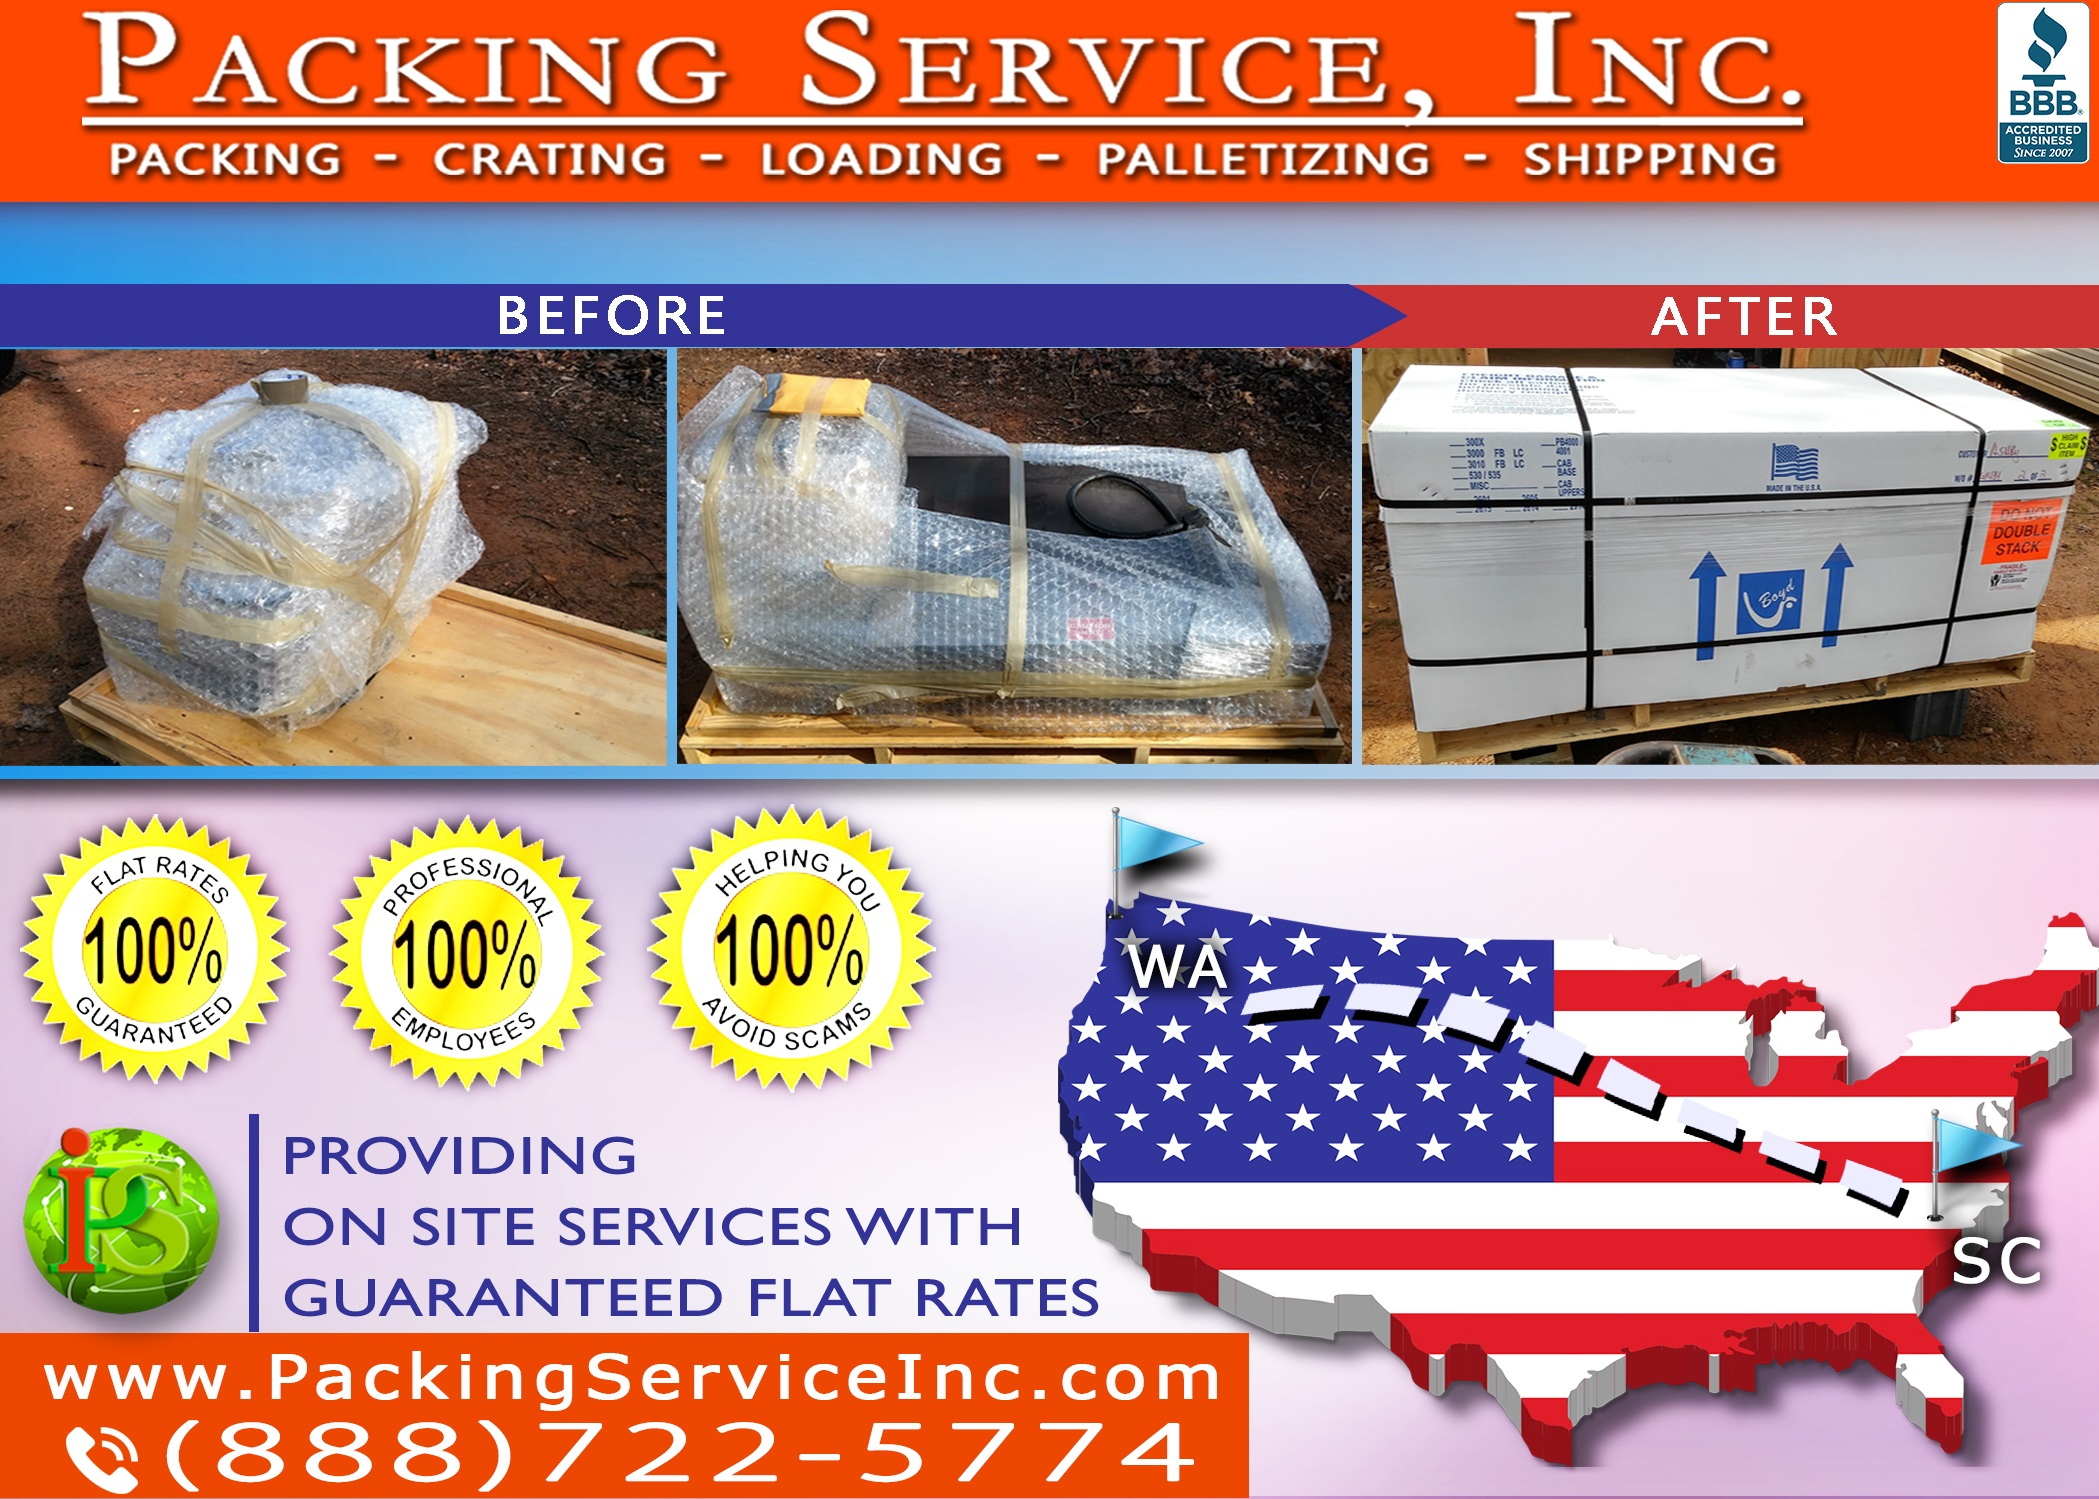 wrapping-palletizing-and-shipping-machinery-from-sc-to-wa-with-packing-service-inc-493